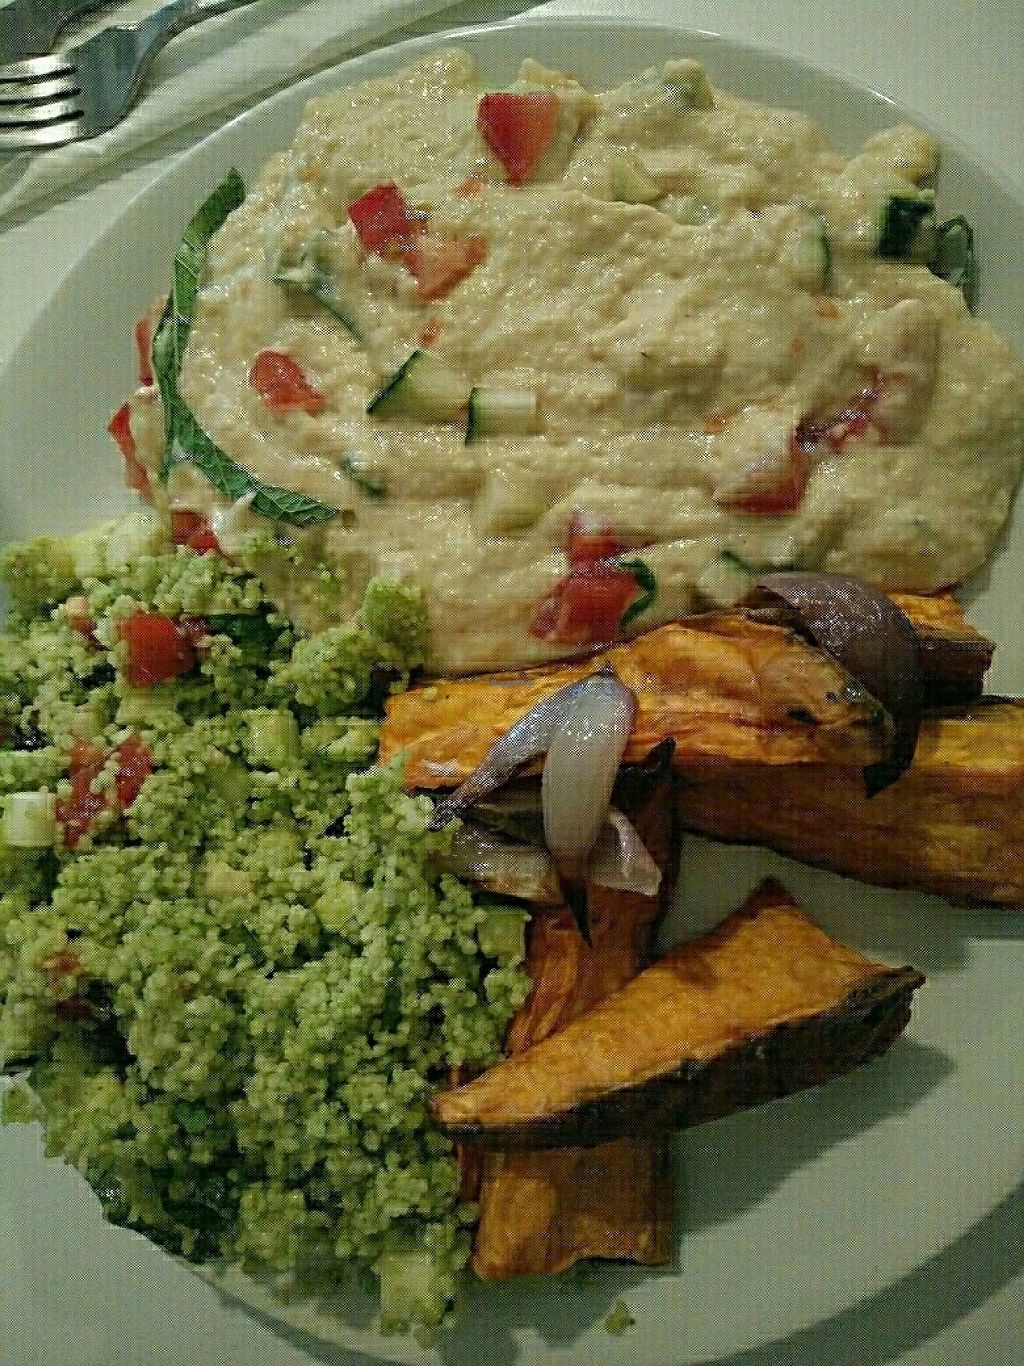 """Photo of BaniBanoo  by <a href=""""/members/profile/martinicontomate"""">martinicontomate</a> <br/>hummus, quinoa and sweet potatoes <br/> May 20, 2017  - <a href='/contact/abuse/image/78087/260587'>Report</a>"""